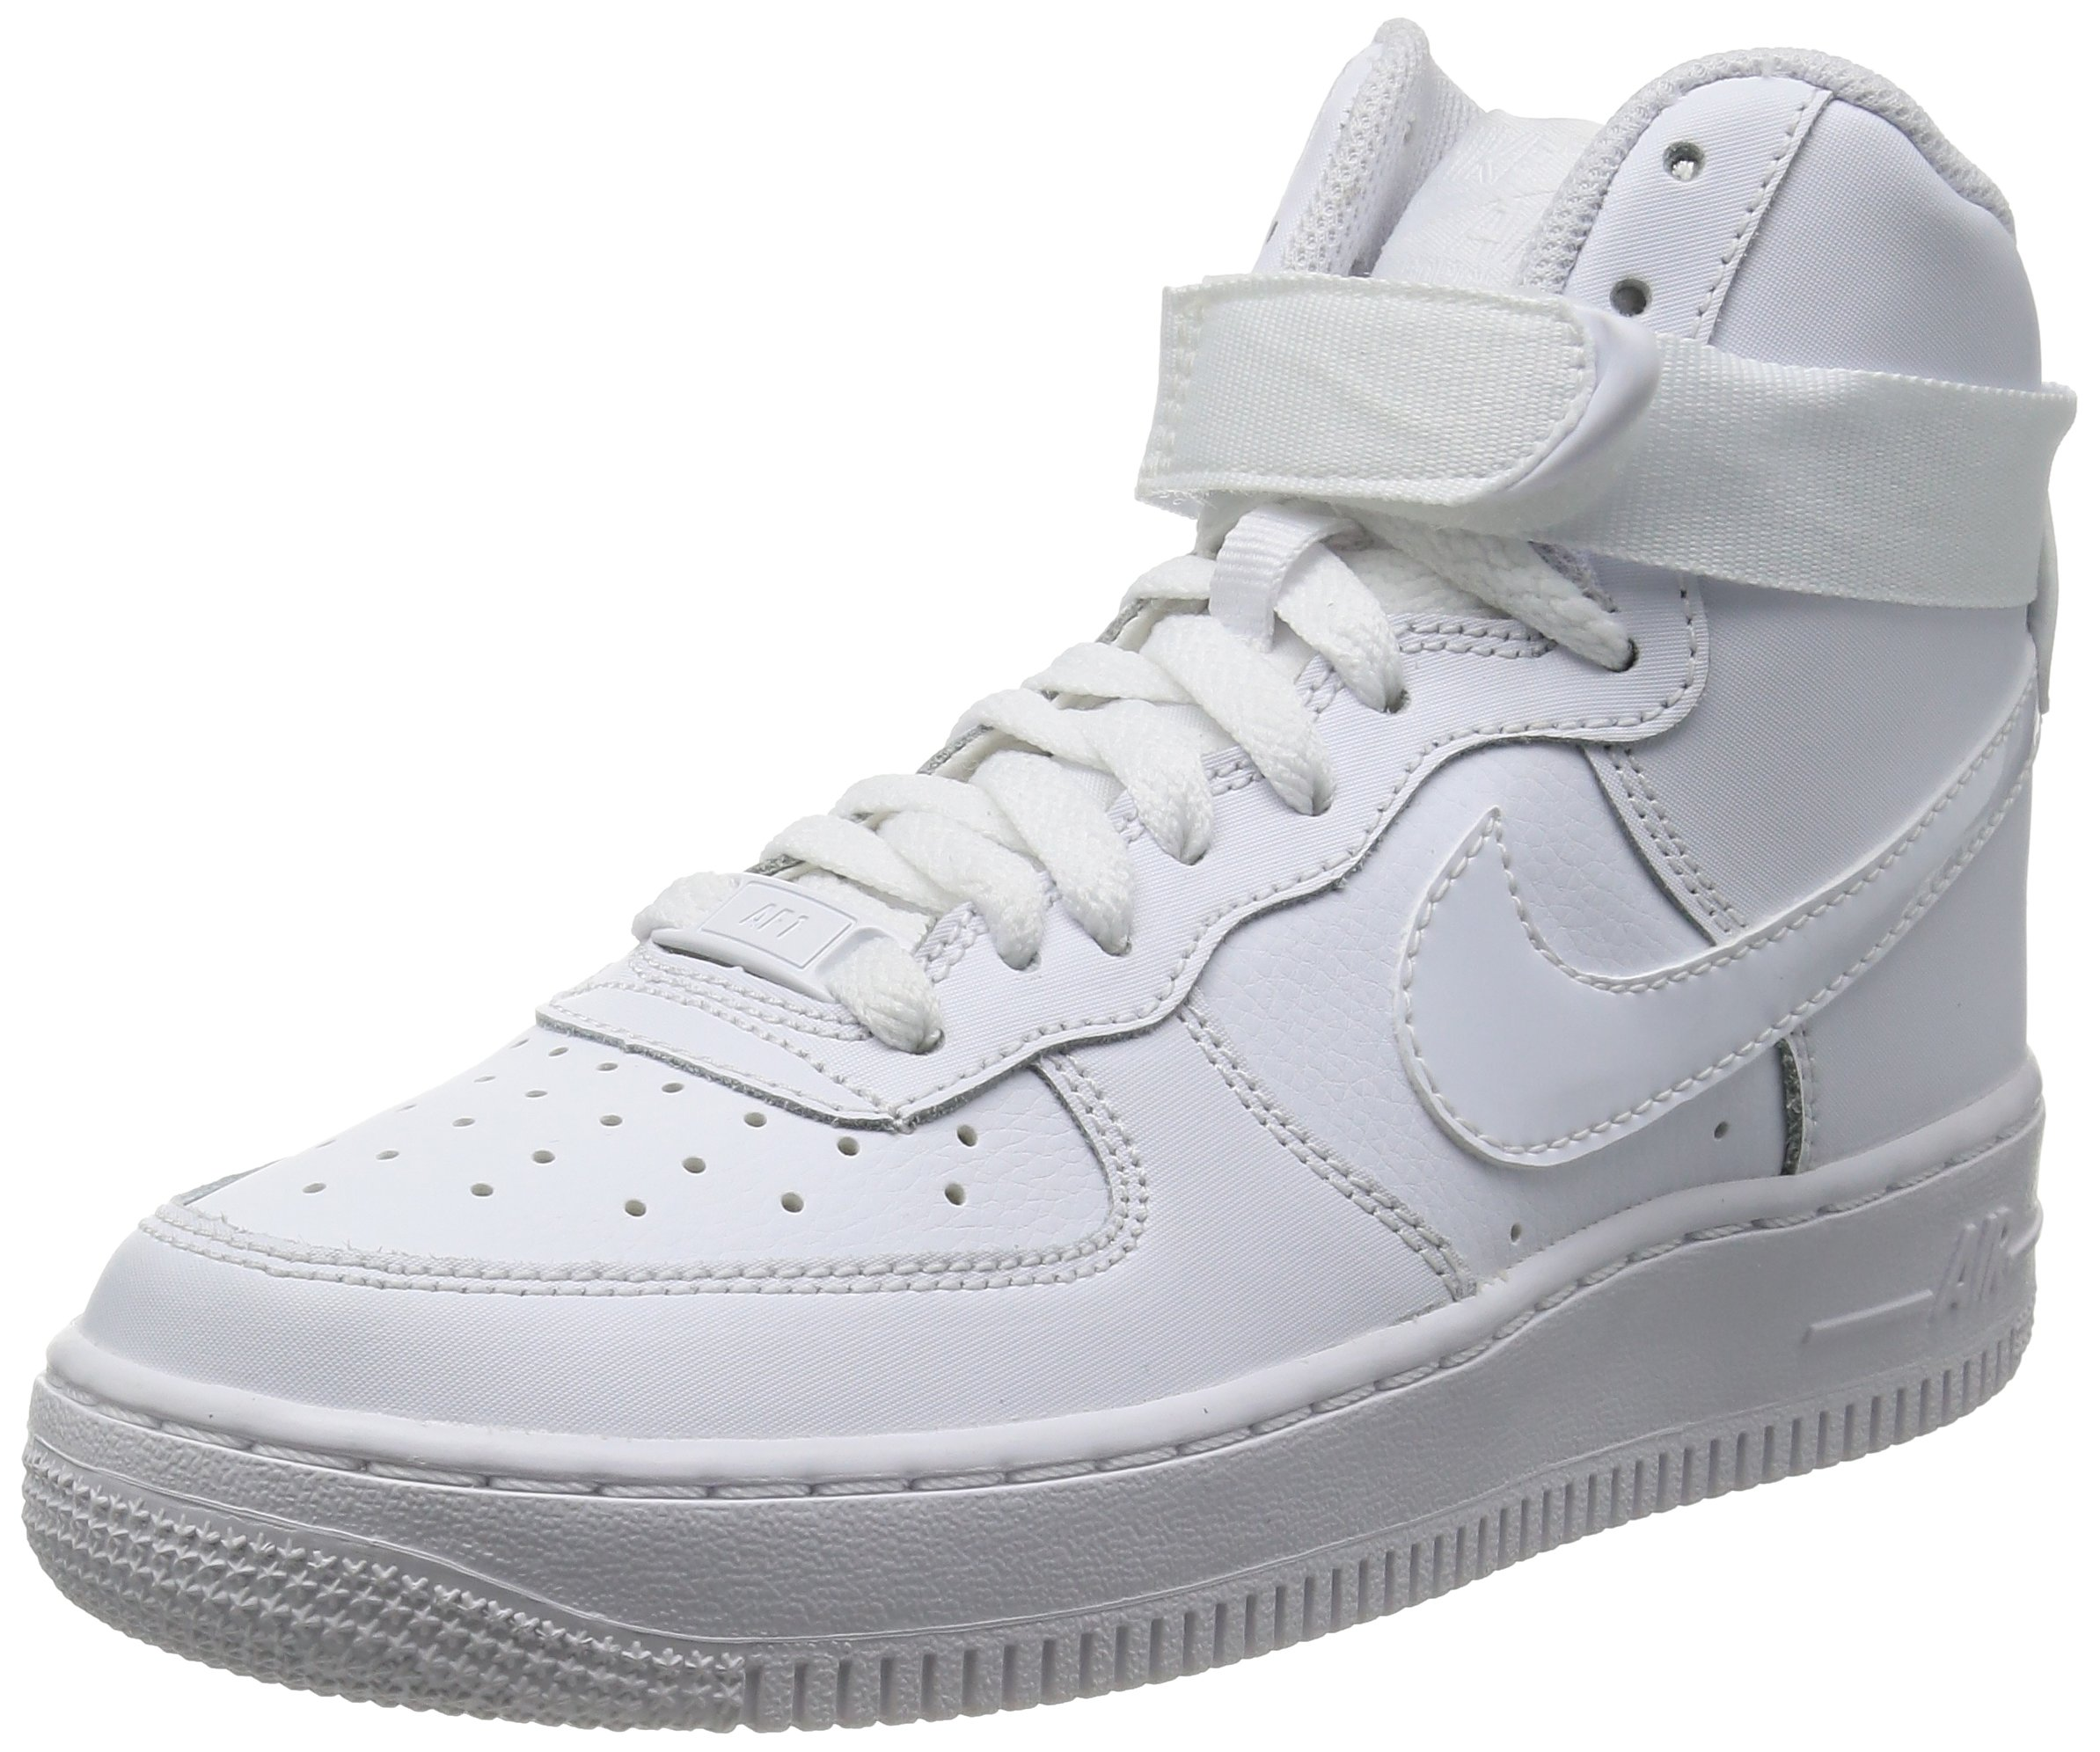 64875578a7 Galleon - Nike Air Force 1 High Big Kids Style: 653998-100 Size: 4 White